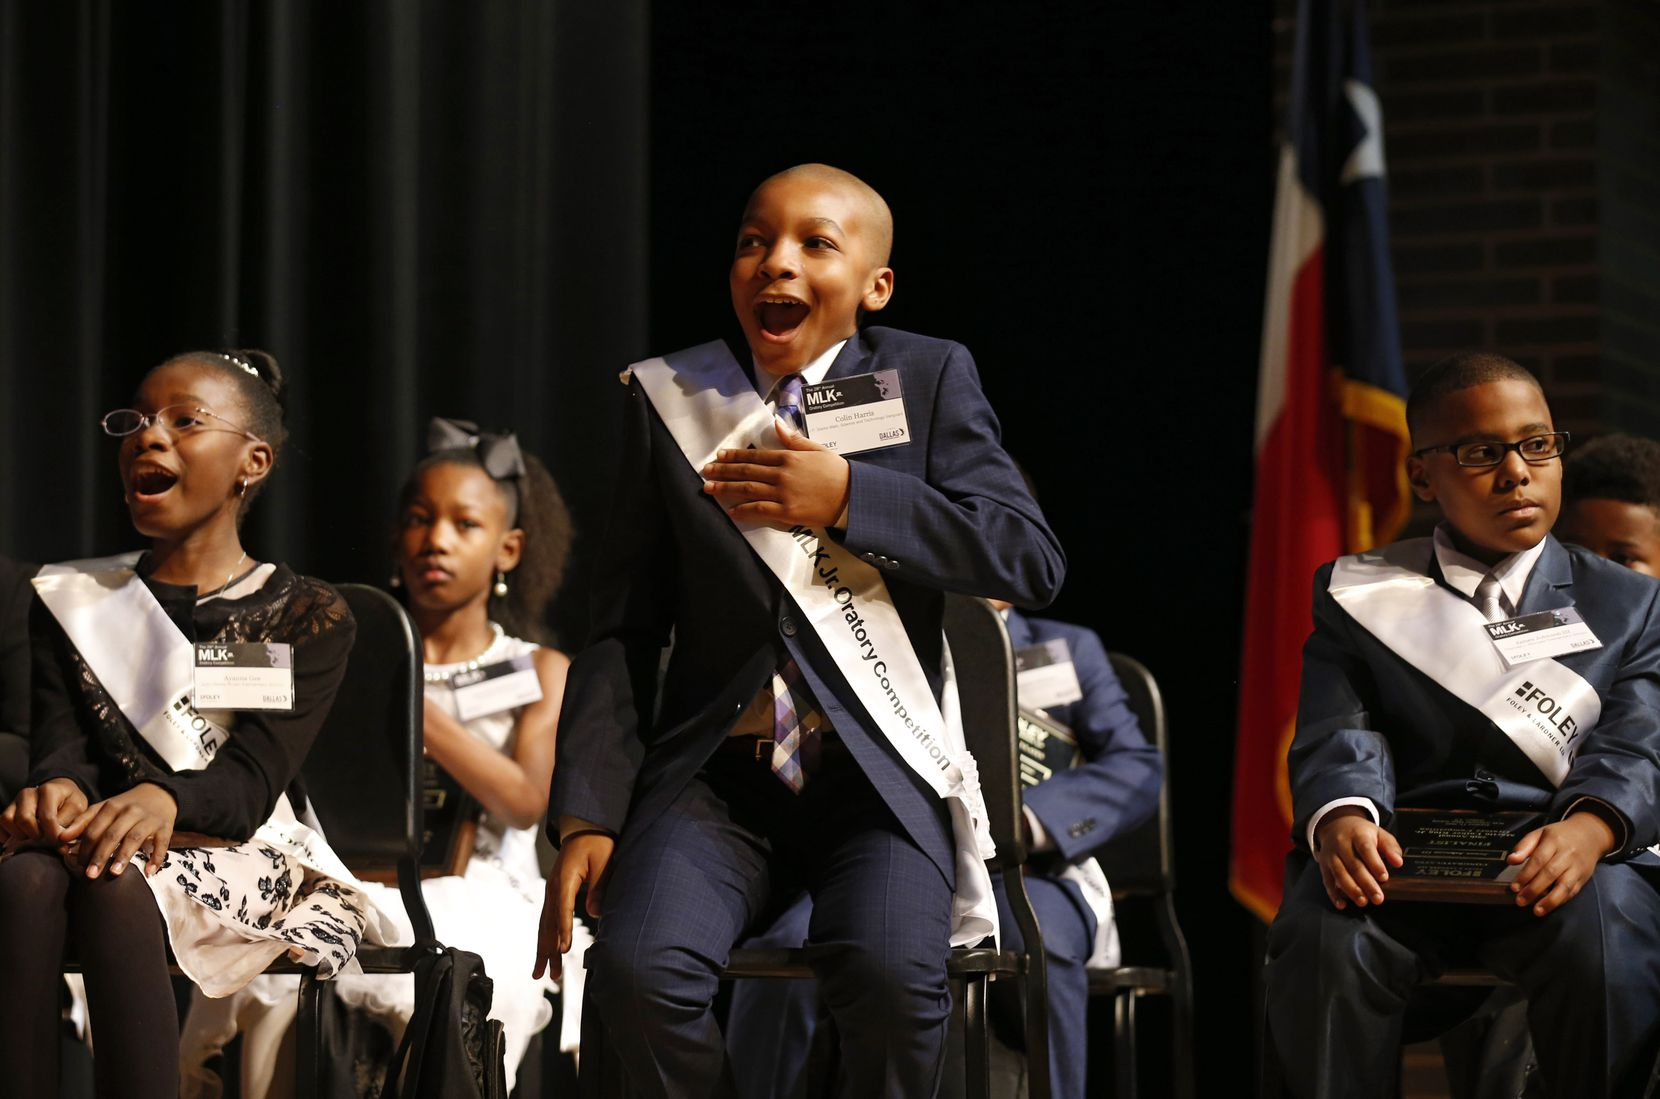 """Fifth-grader Colin Harris of J.P. Starks Math, Science and Technology Vanguard won the MLK Jr. Oratory Competition in January. """"He would remind us that the only way evil exists is for good men to remain silent,"""" said Colin, 11, addressing """"What would Dr. King's vision be for America in 2020?"""""""